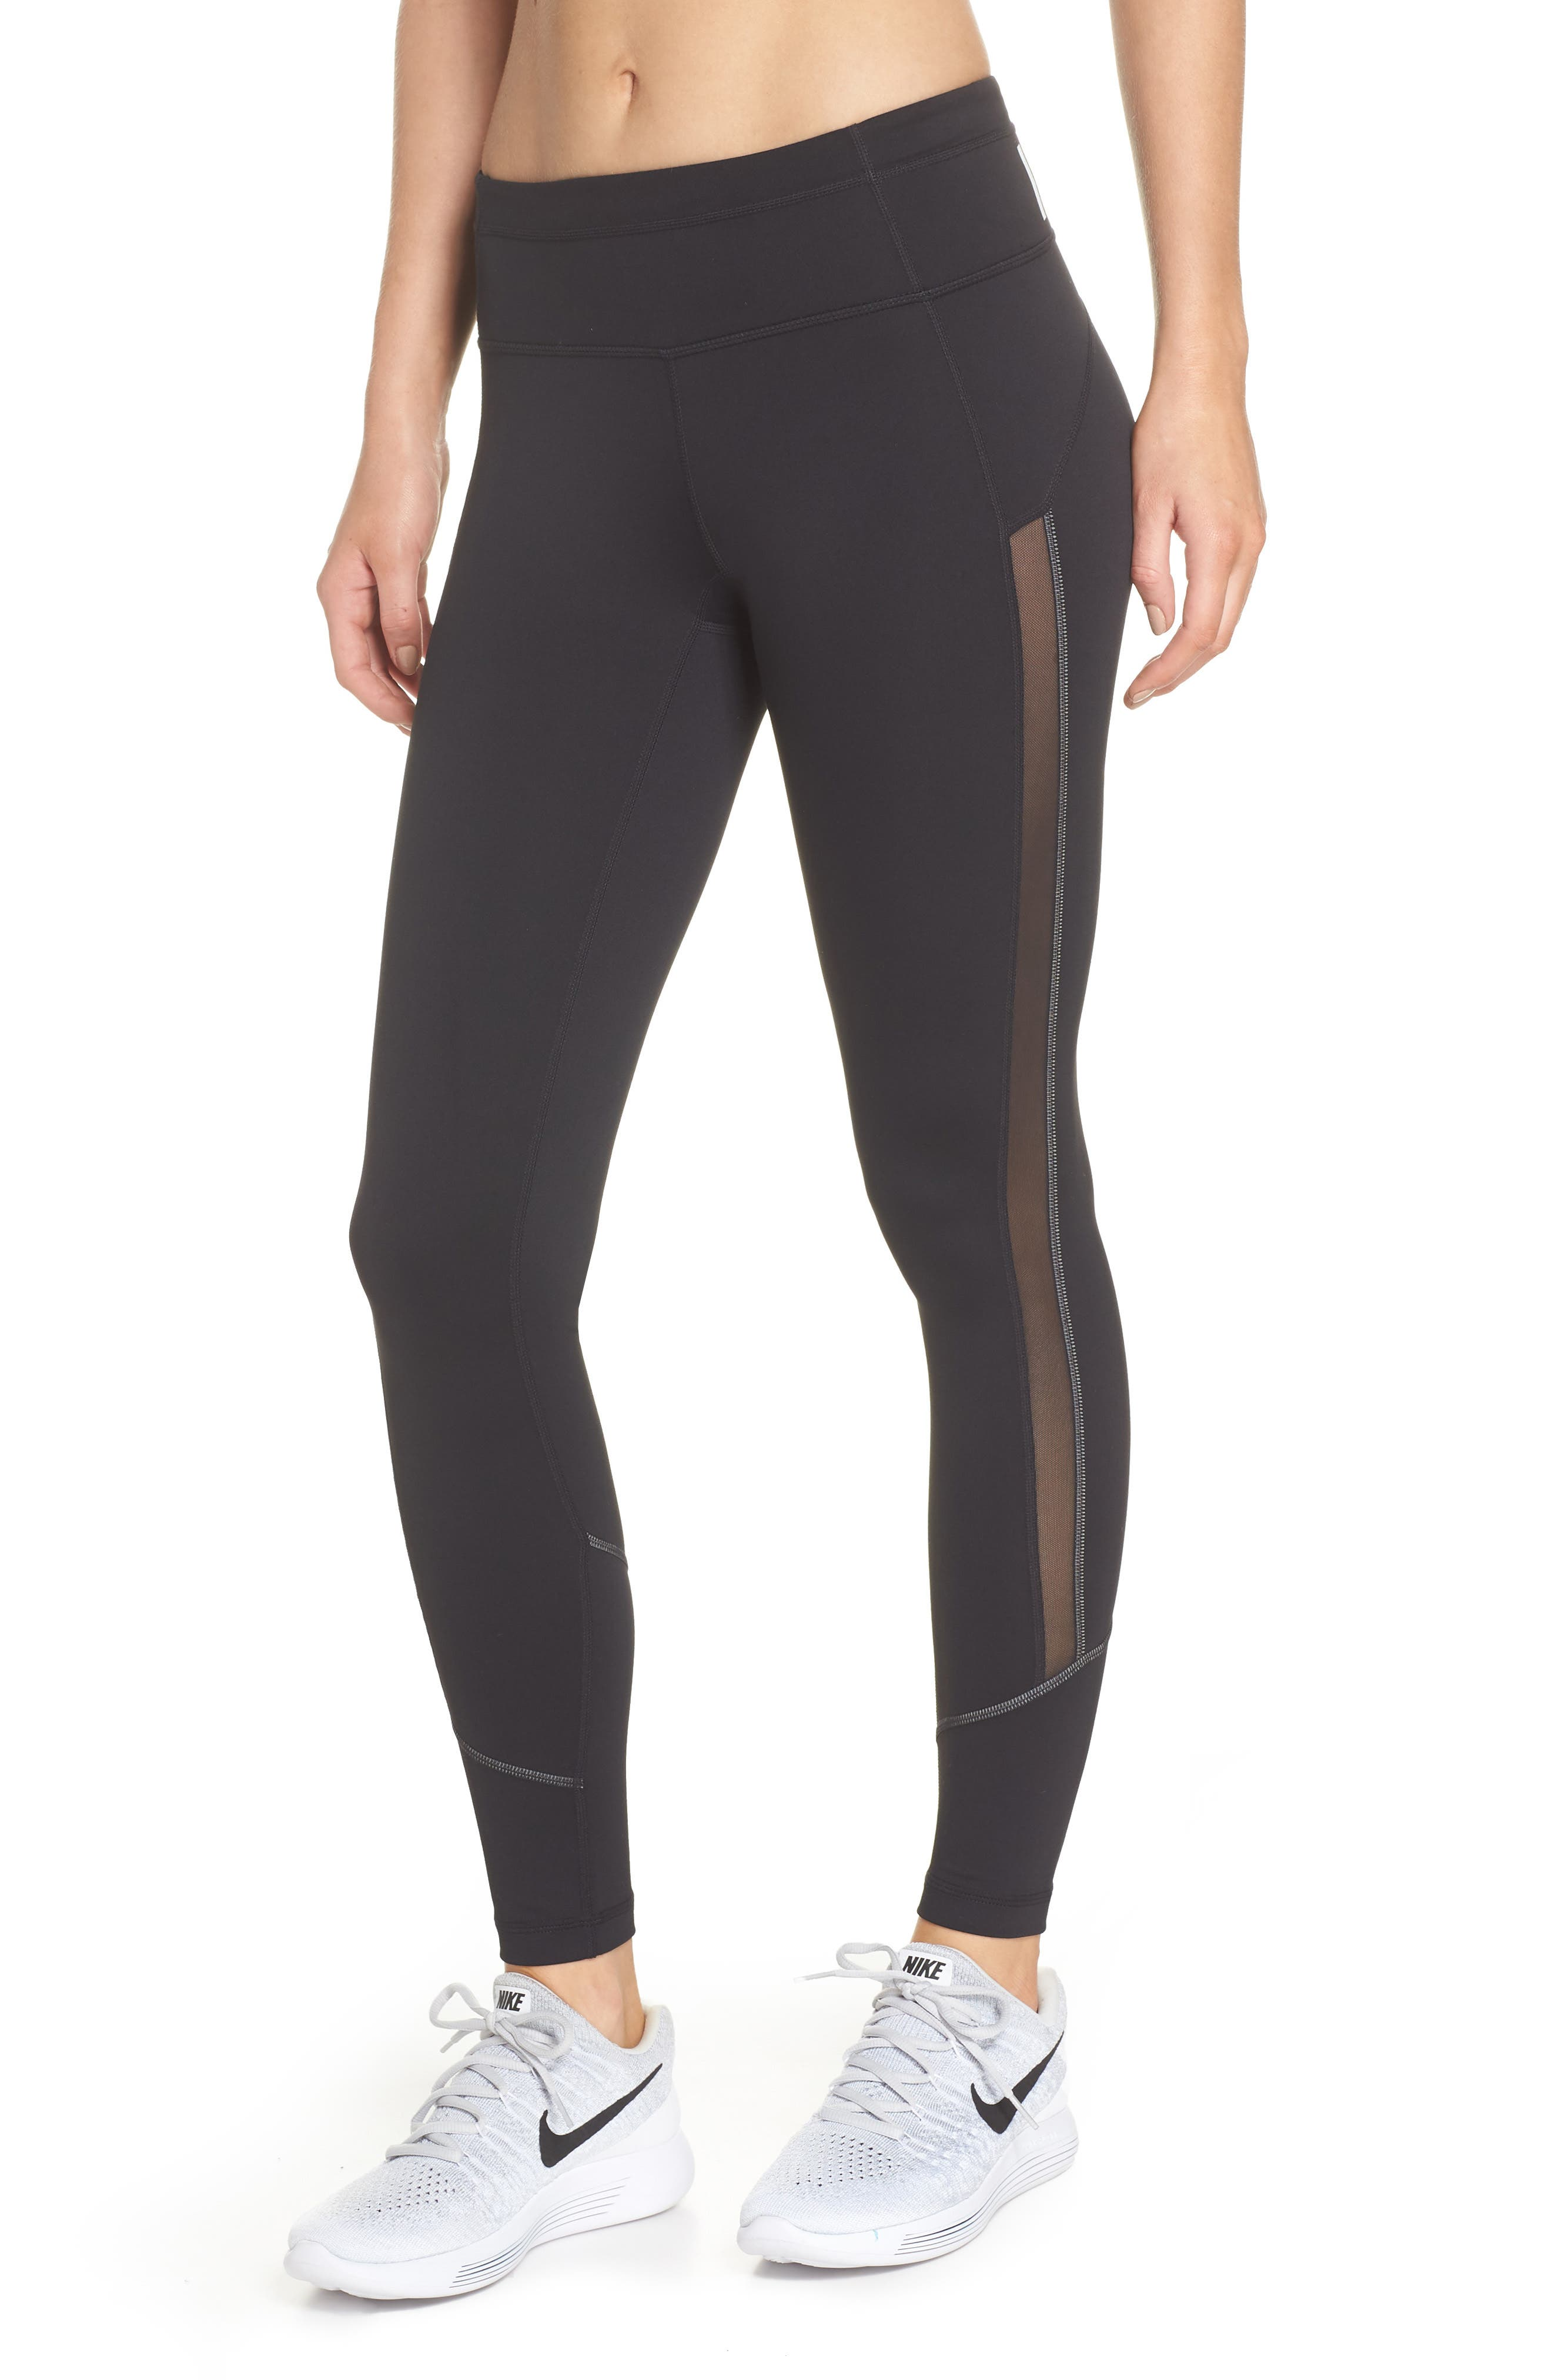 All In Vision Ankle Leggings,                         Main,                         color, 001